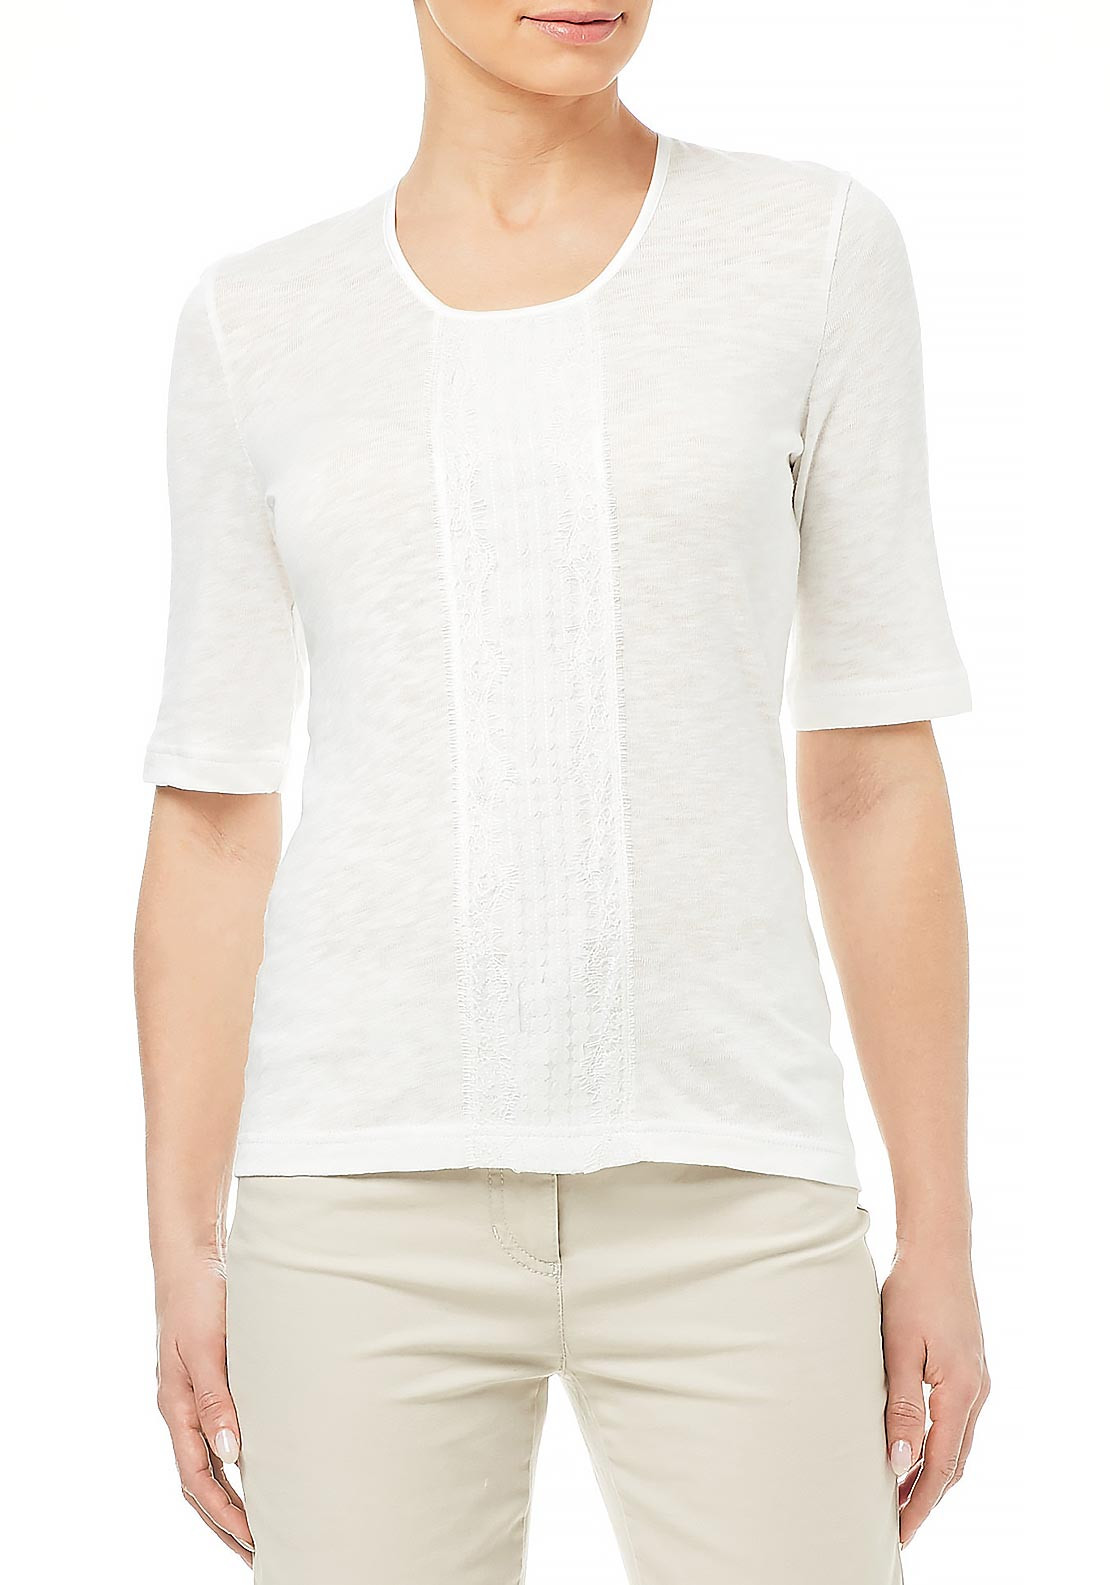 Gerry Weber Embroidered Trim Short Sleeve Sweater Jumper, White